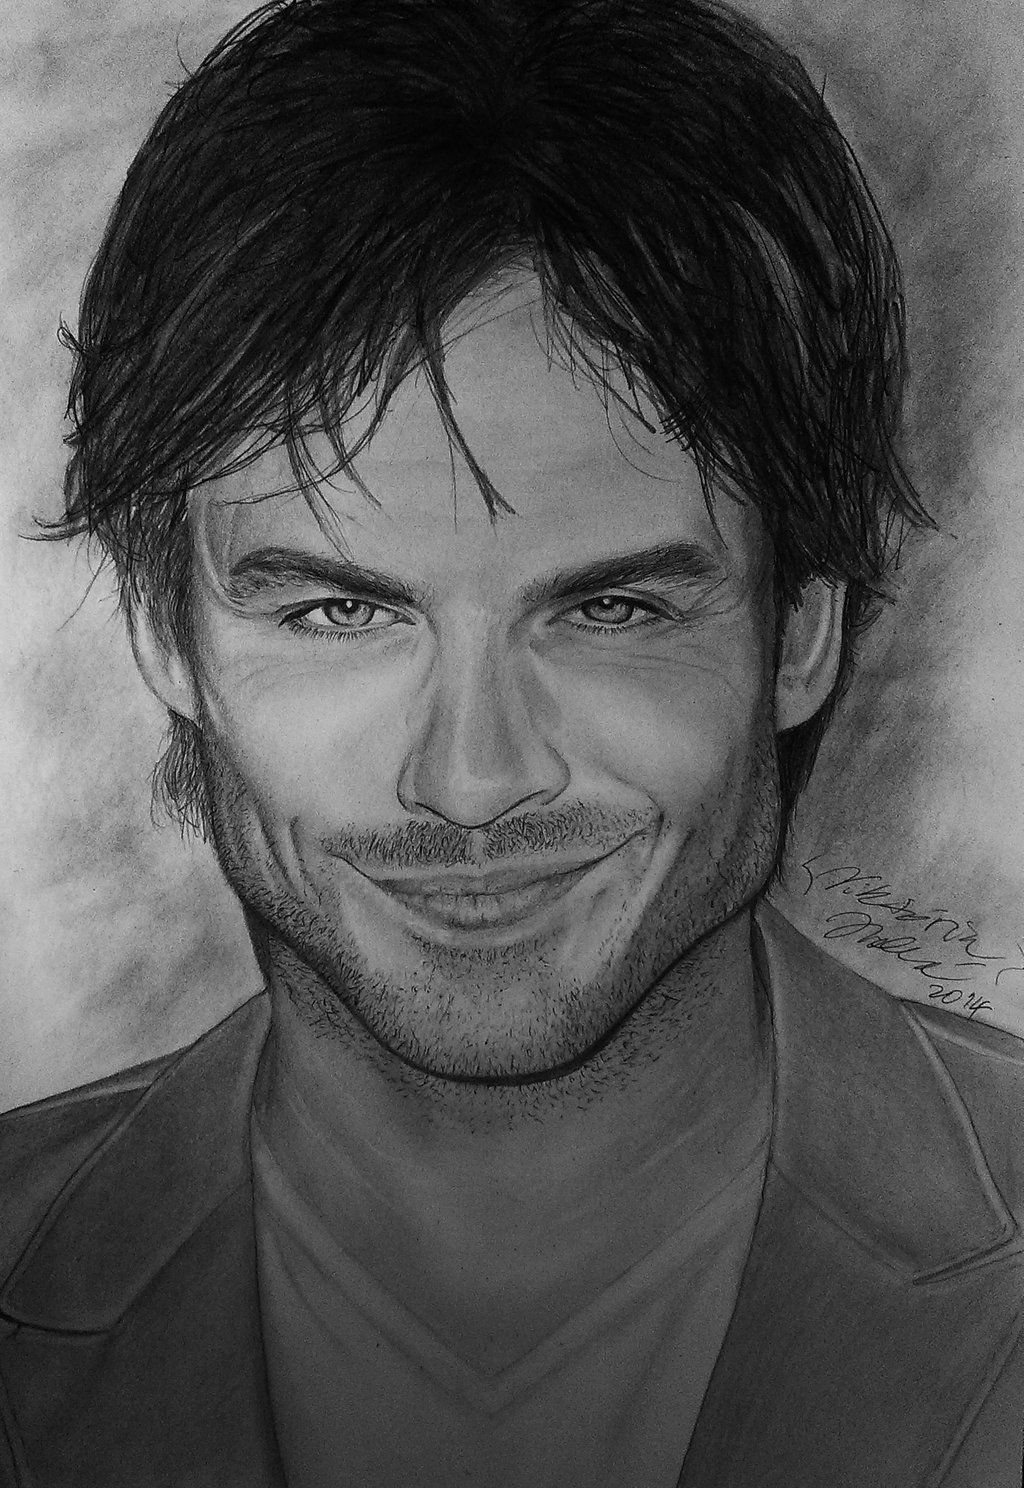 Ian somerhalder by on deviantart - Vampire diaries dessin ...